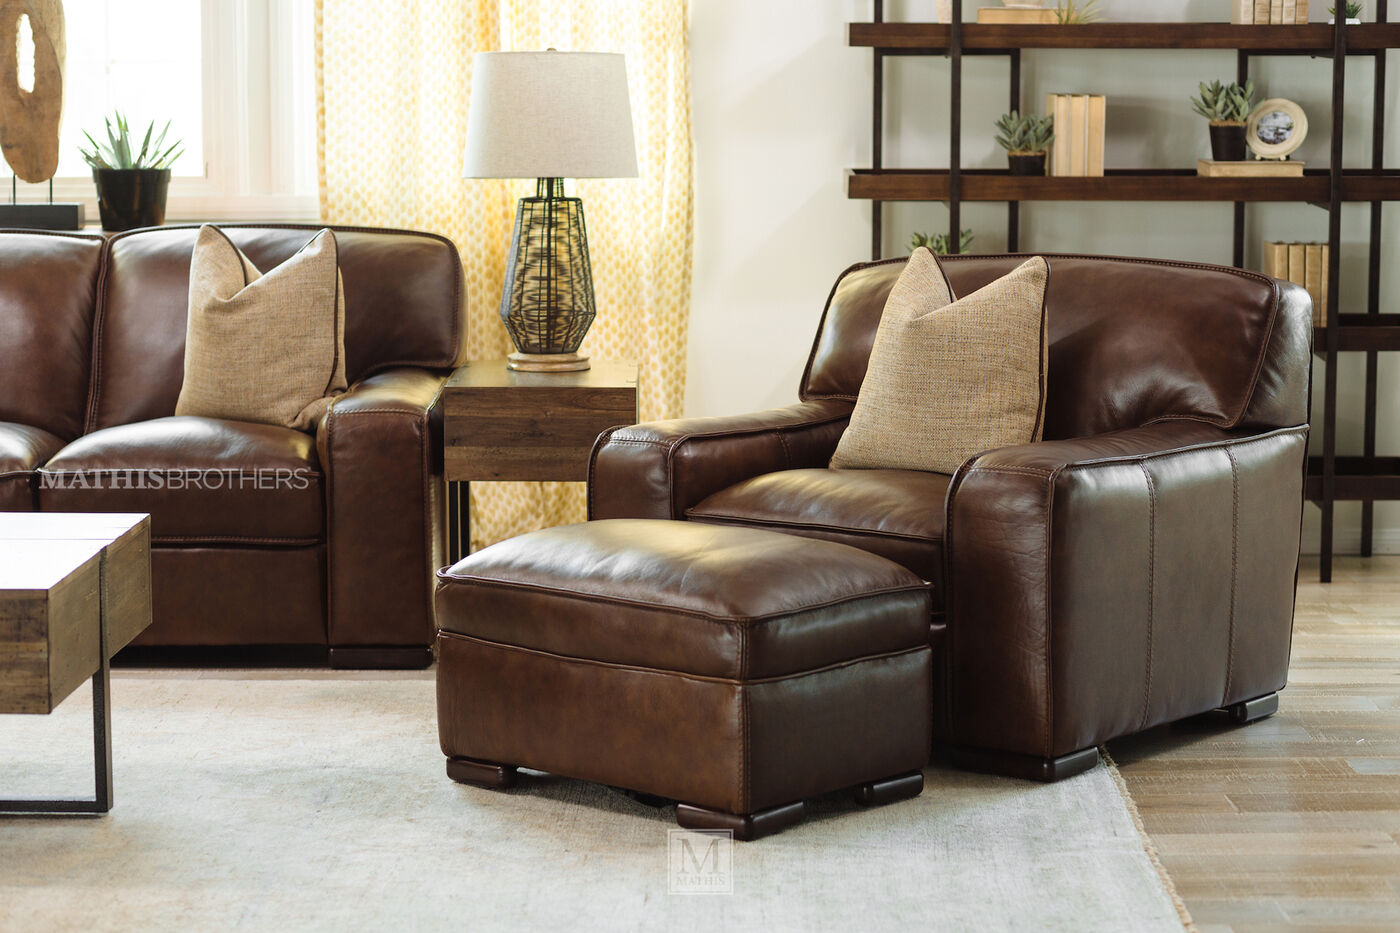 Traditional 31 Quot Leather Ottoman In Brown Mathis Brothers